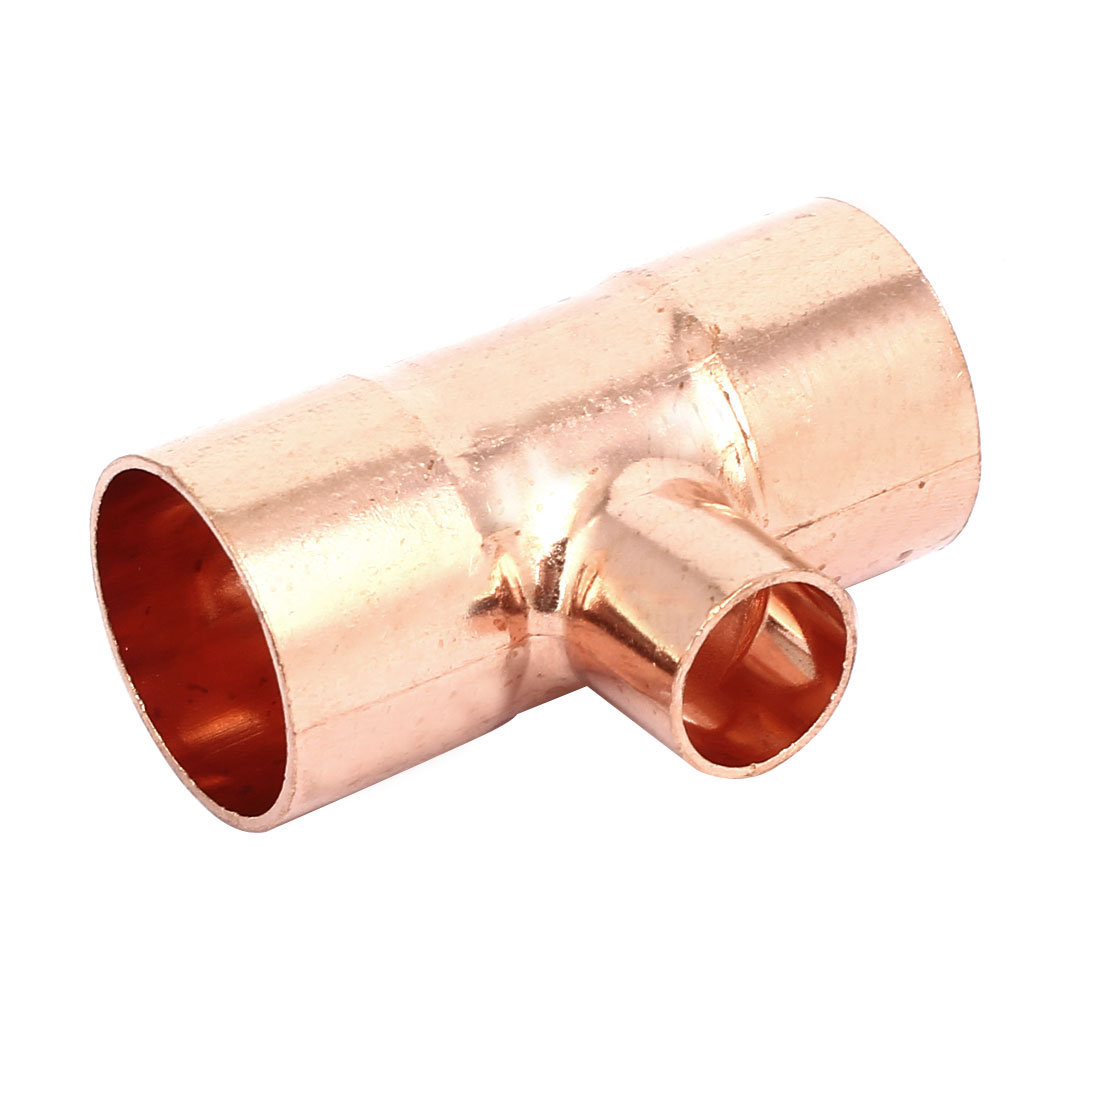 25mmx16mm Copper Tee Reducing Fitting Air Conditioner Plumbing Accessory